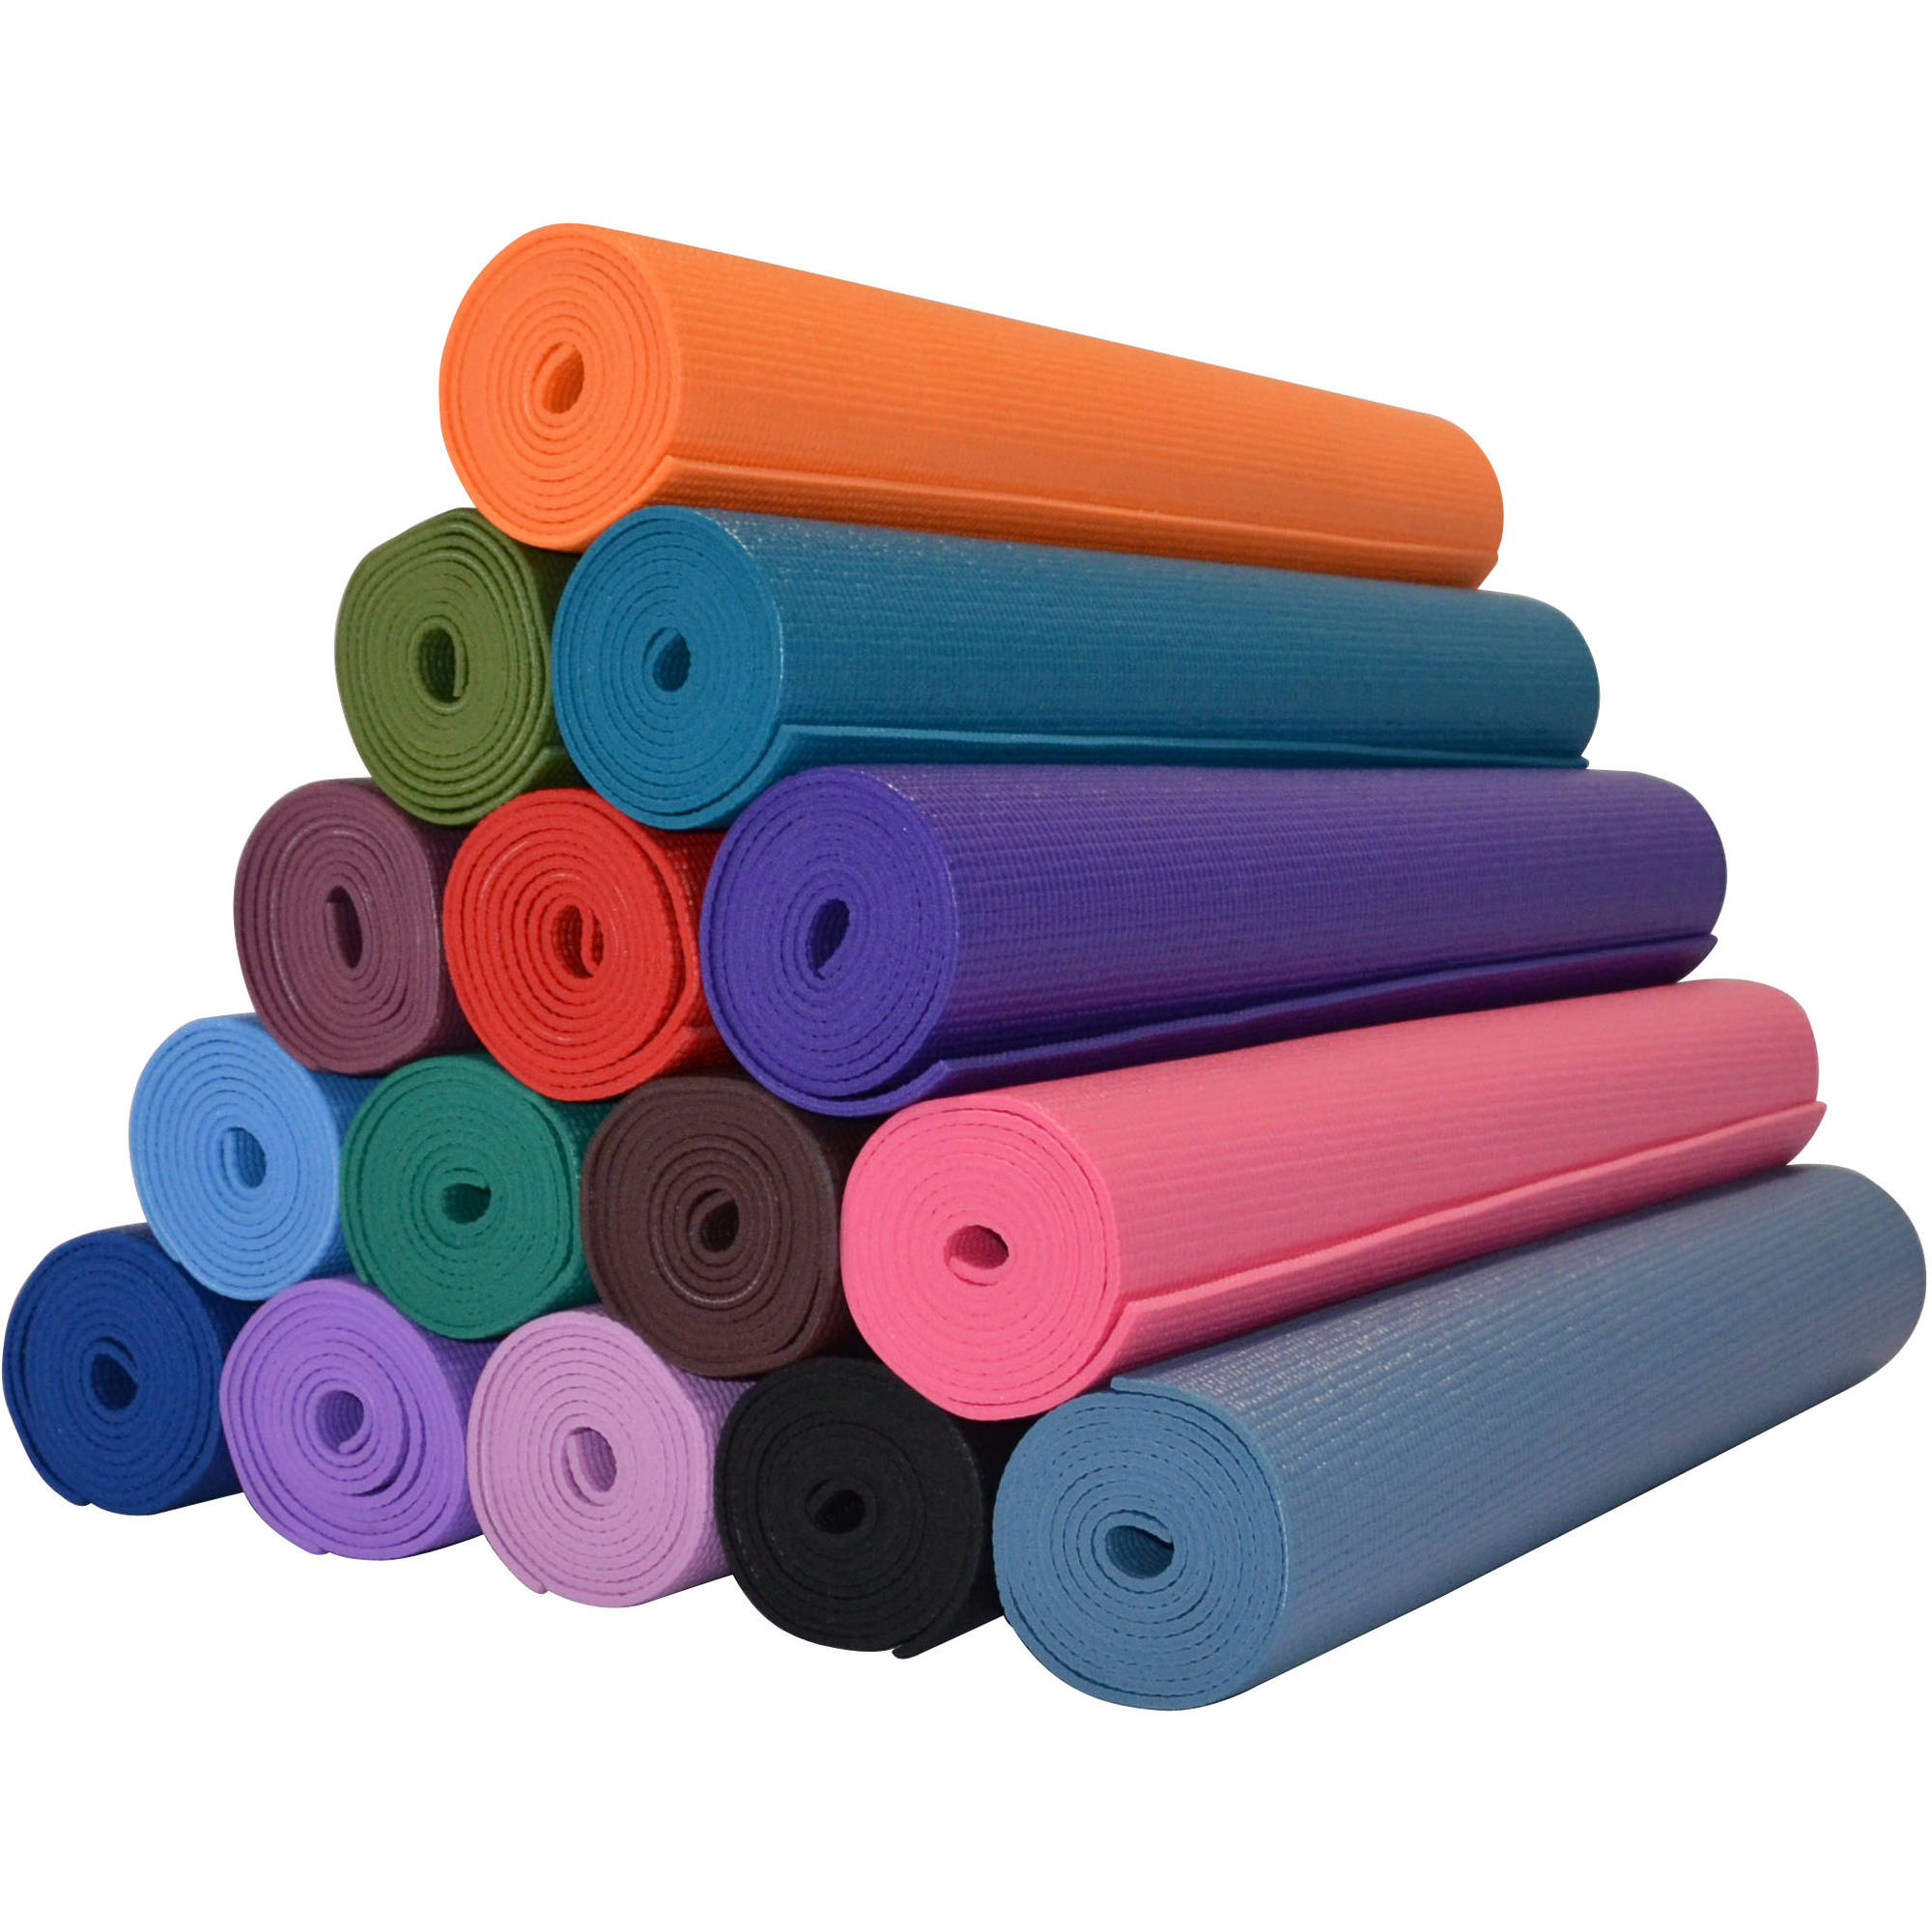 "Yoga Direct Classic 1/8"" Yoga Mat"